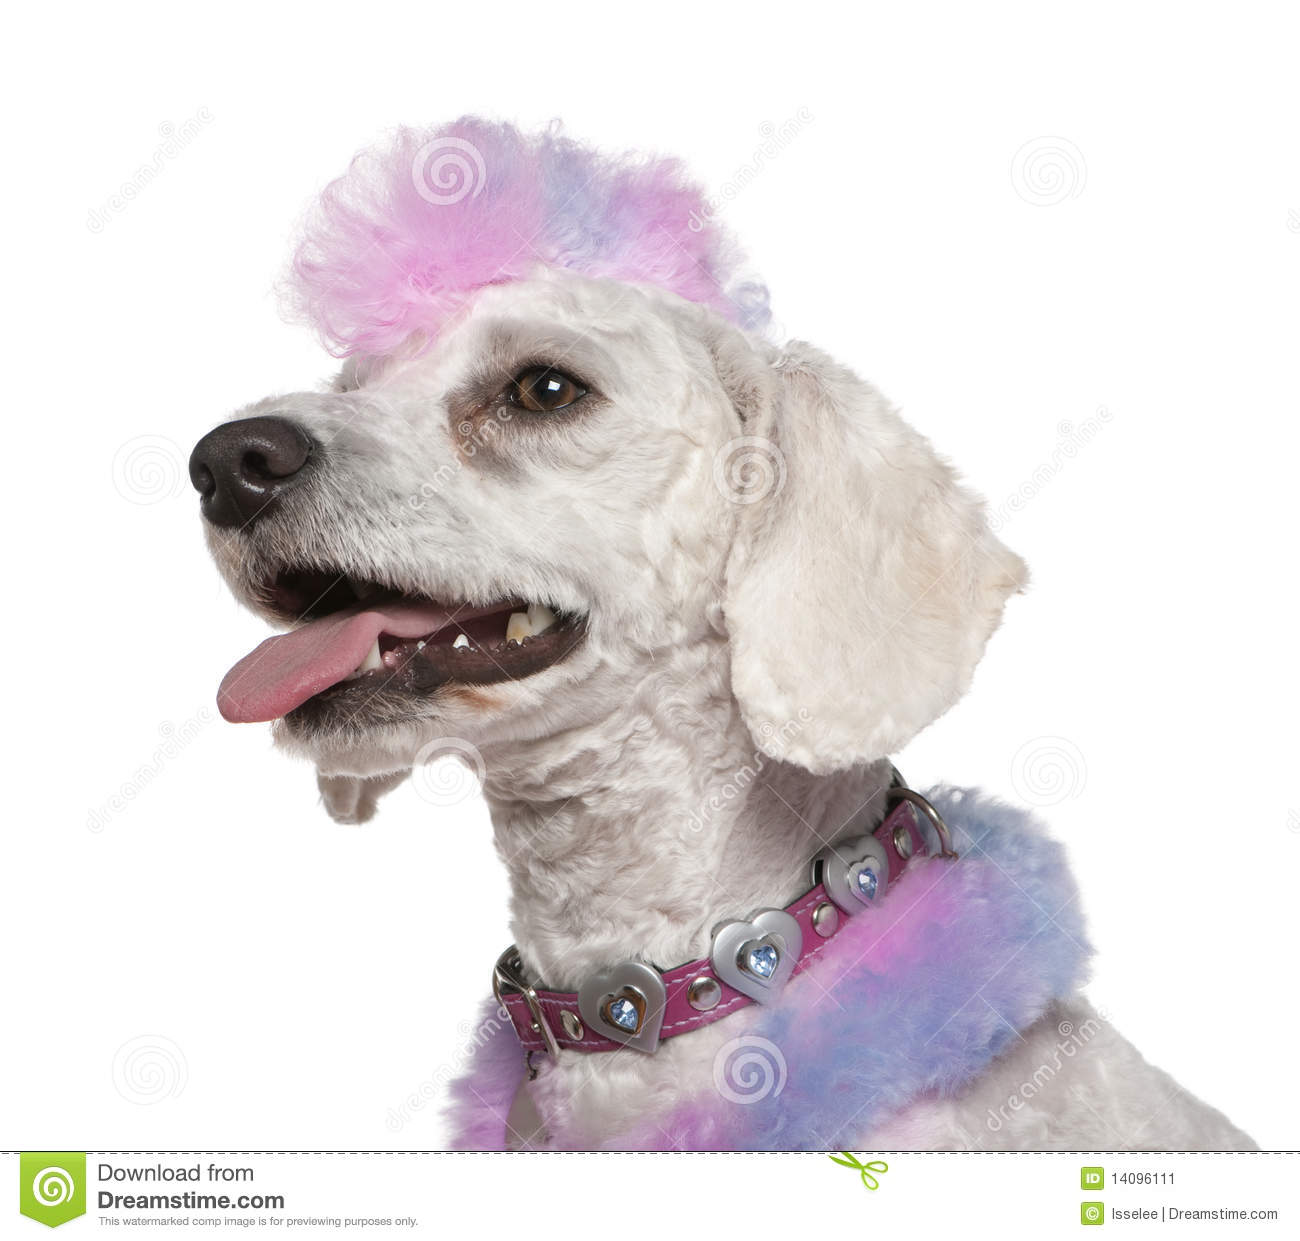 Groomed poodle with pink and purple fur and mohawk